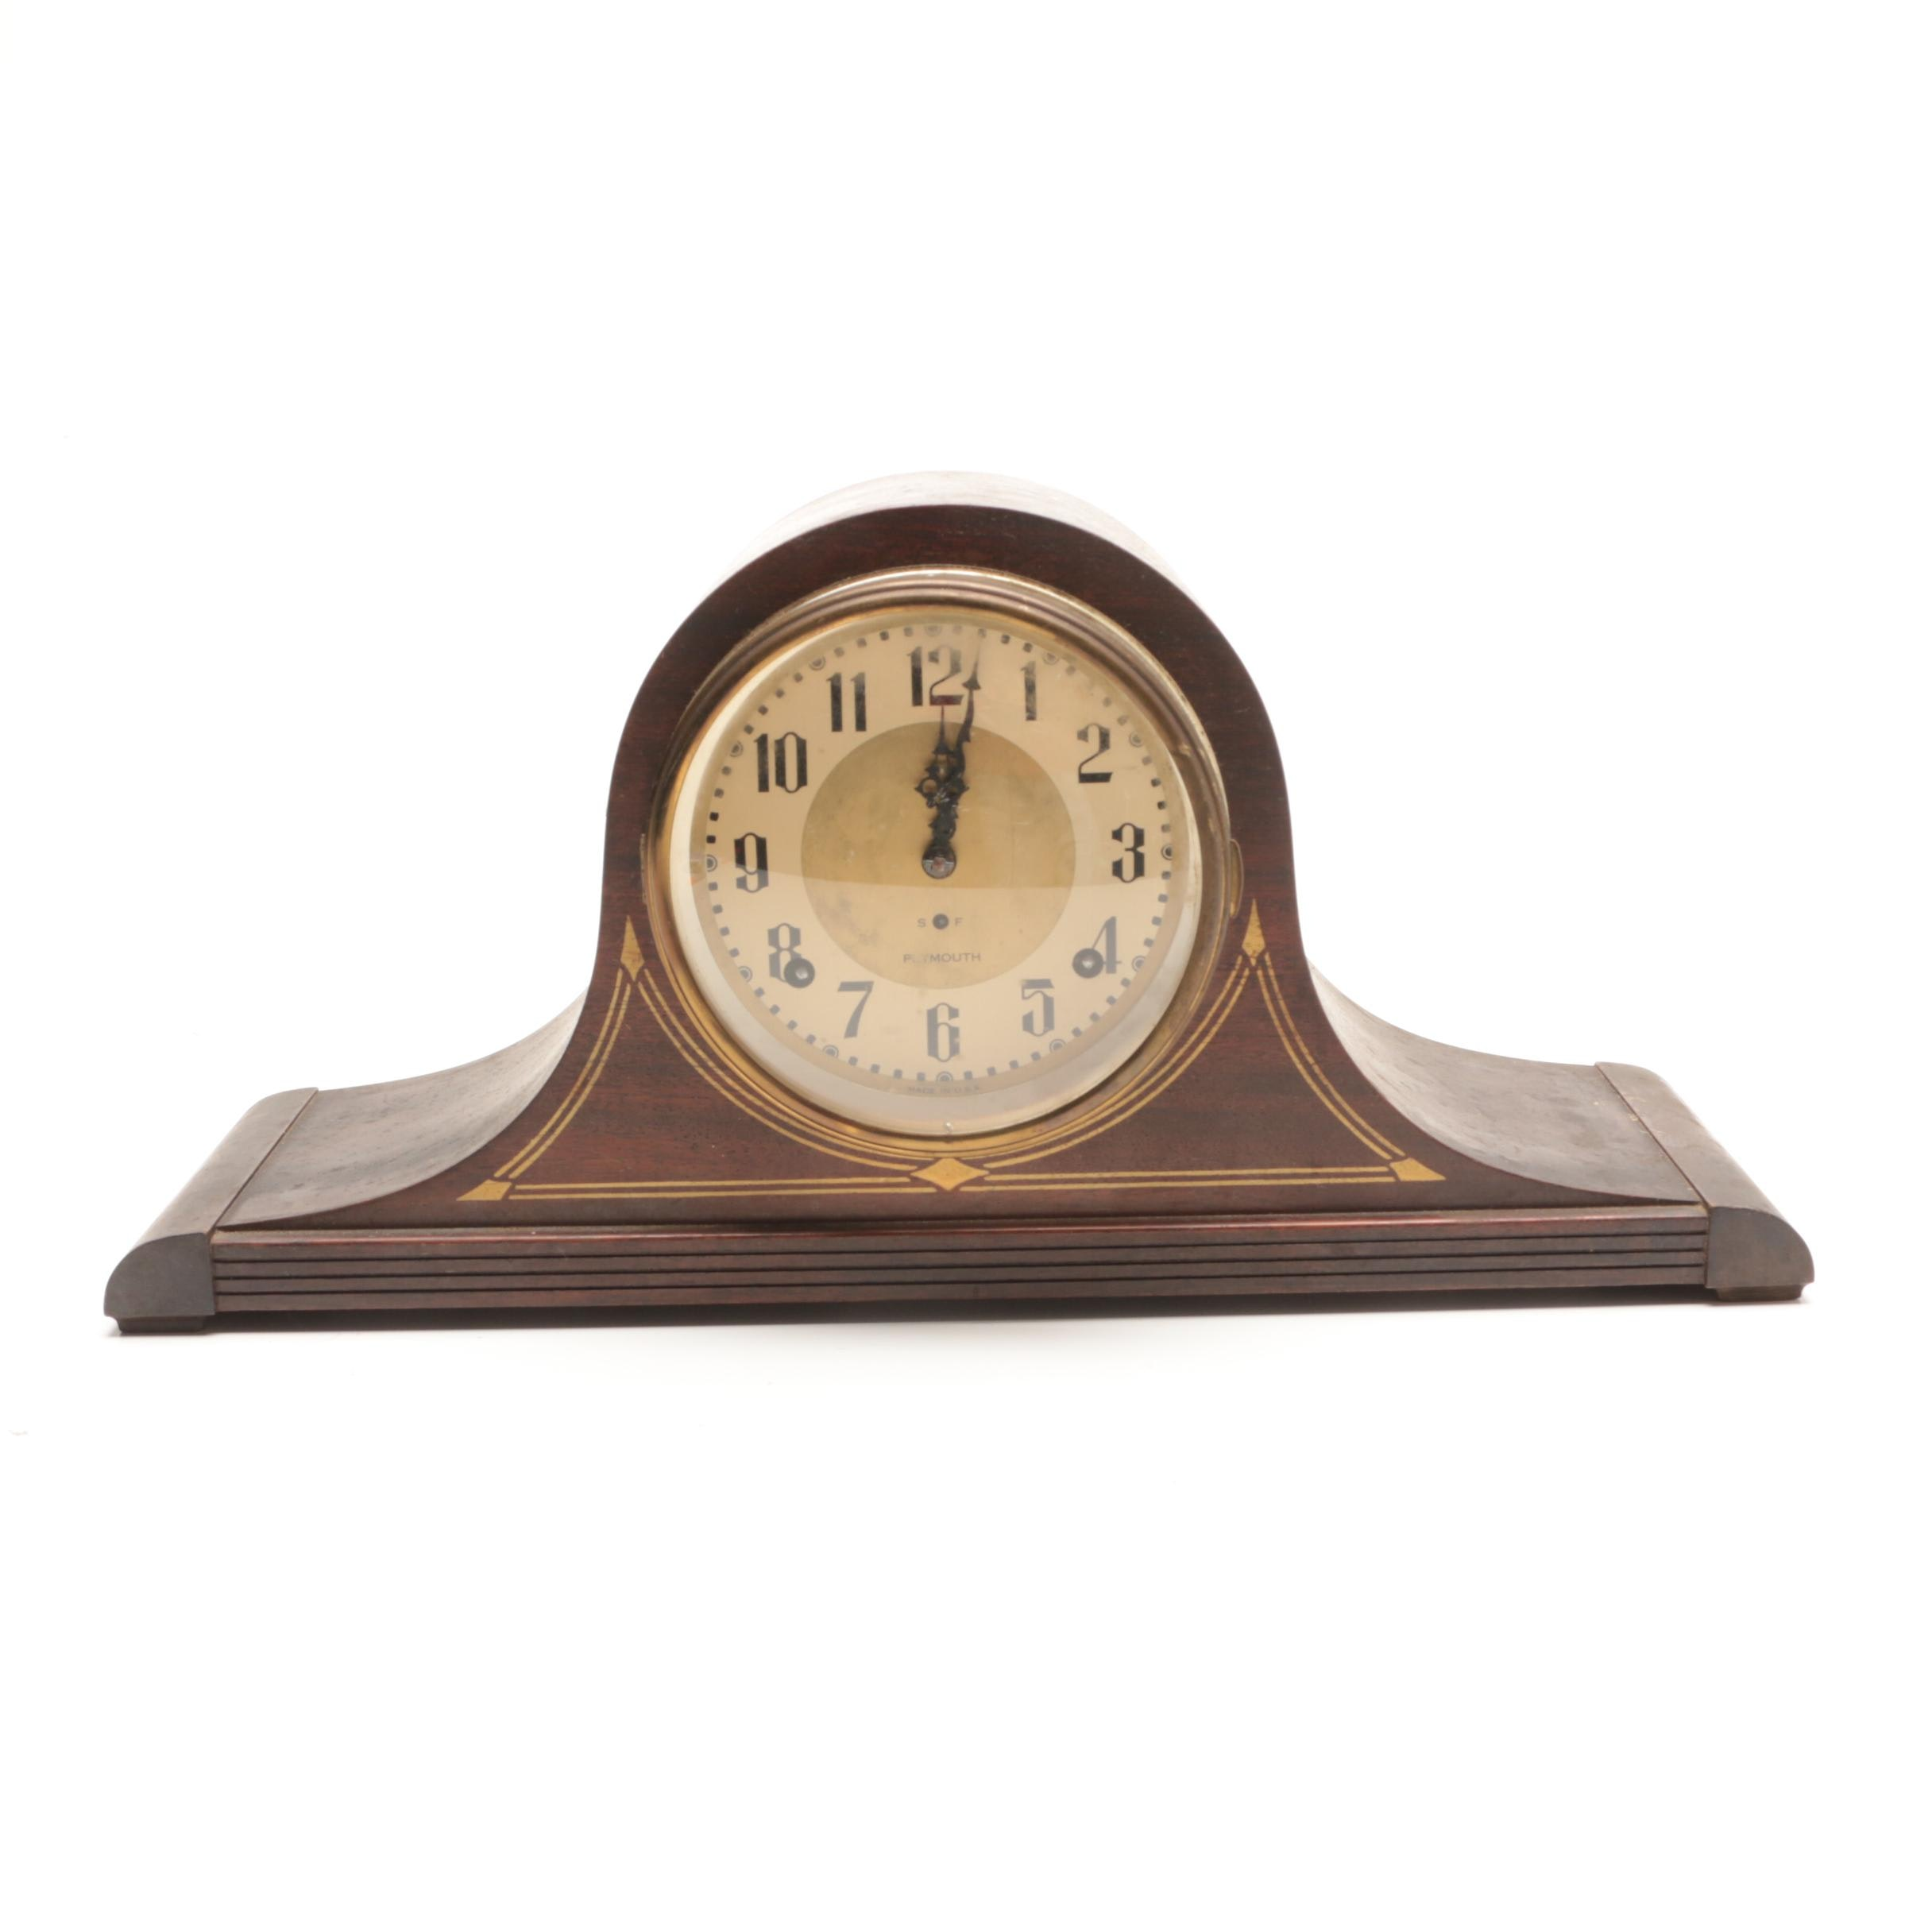 1930s Plymouth Tambour Mantel Clock